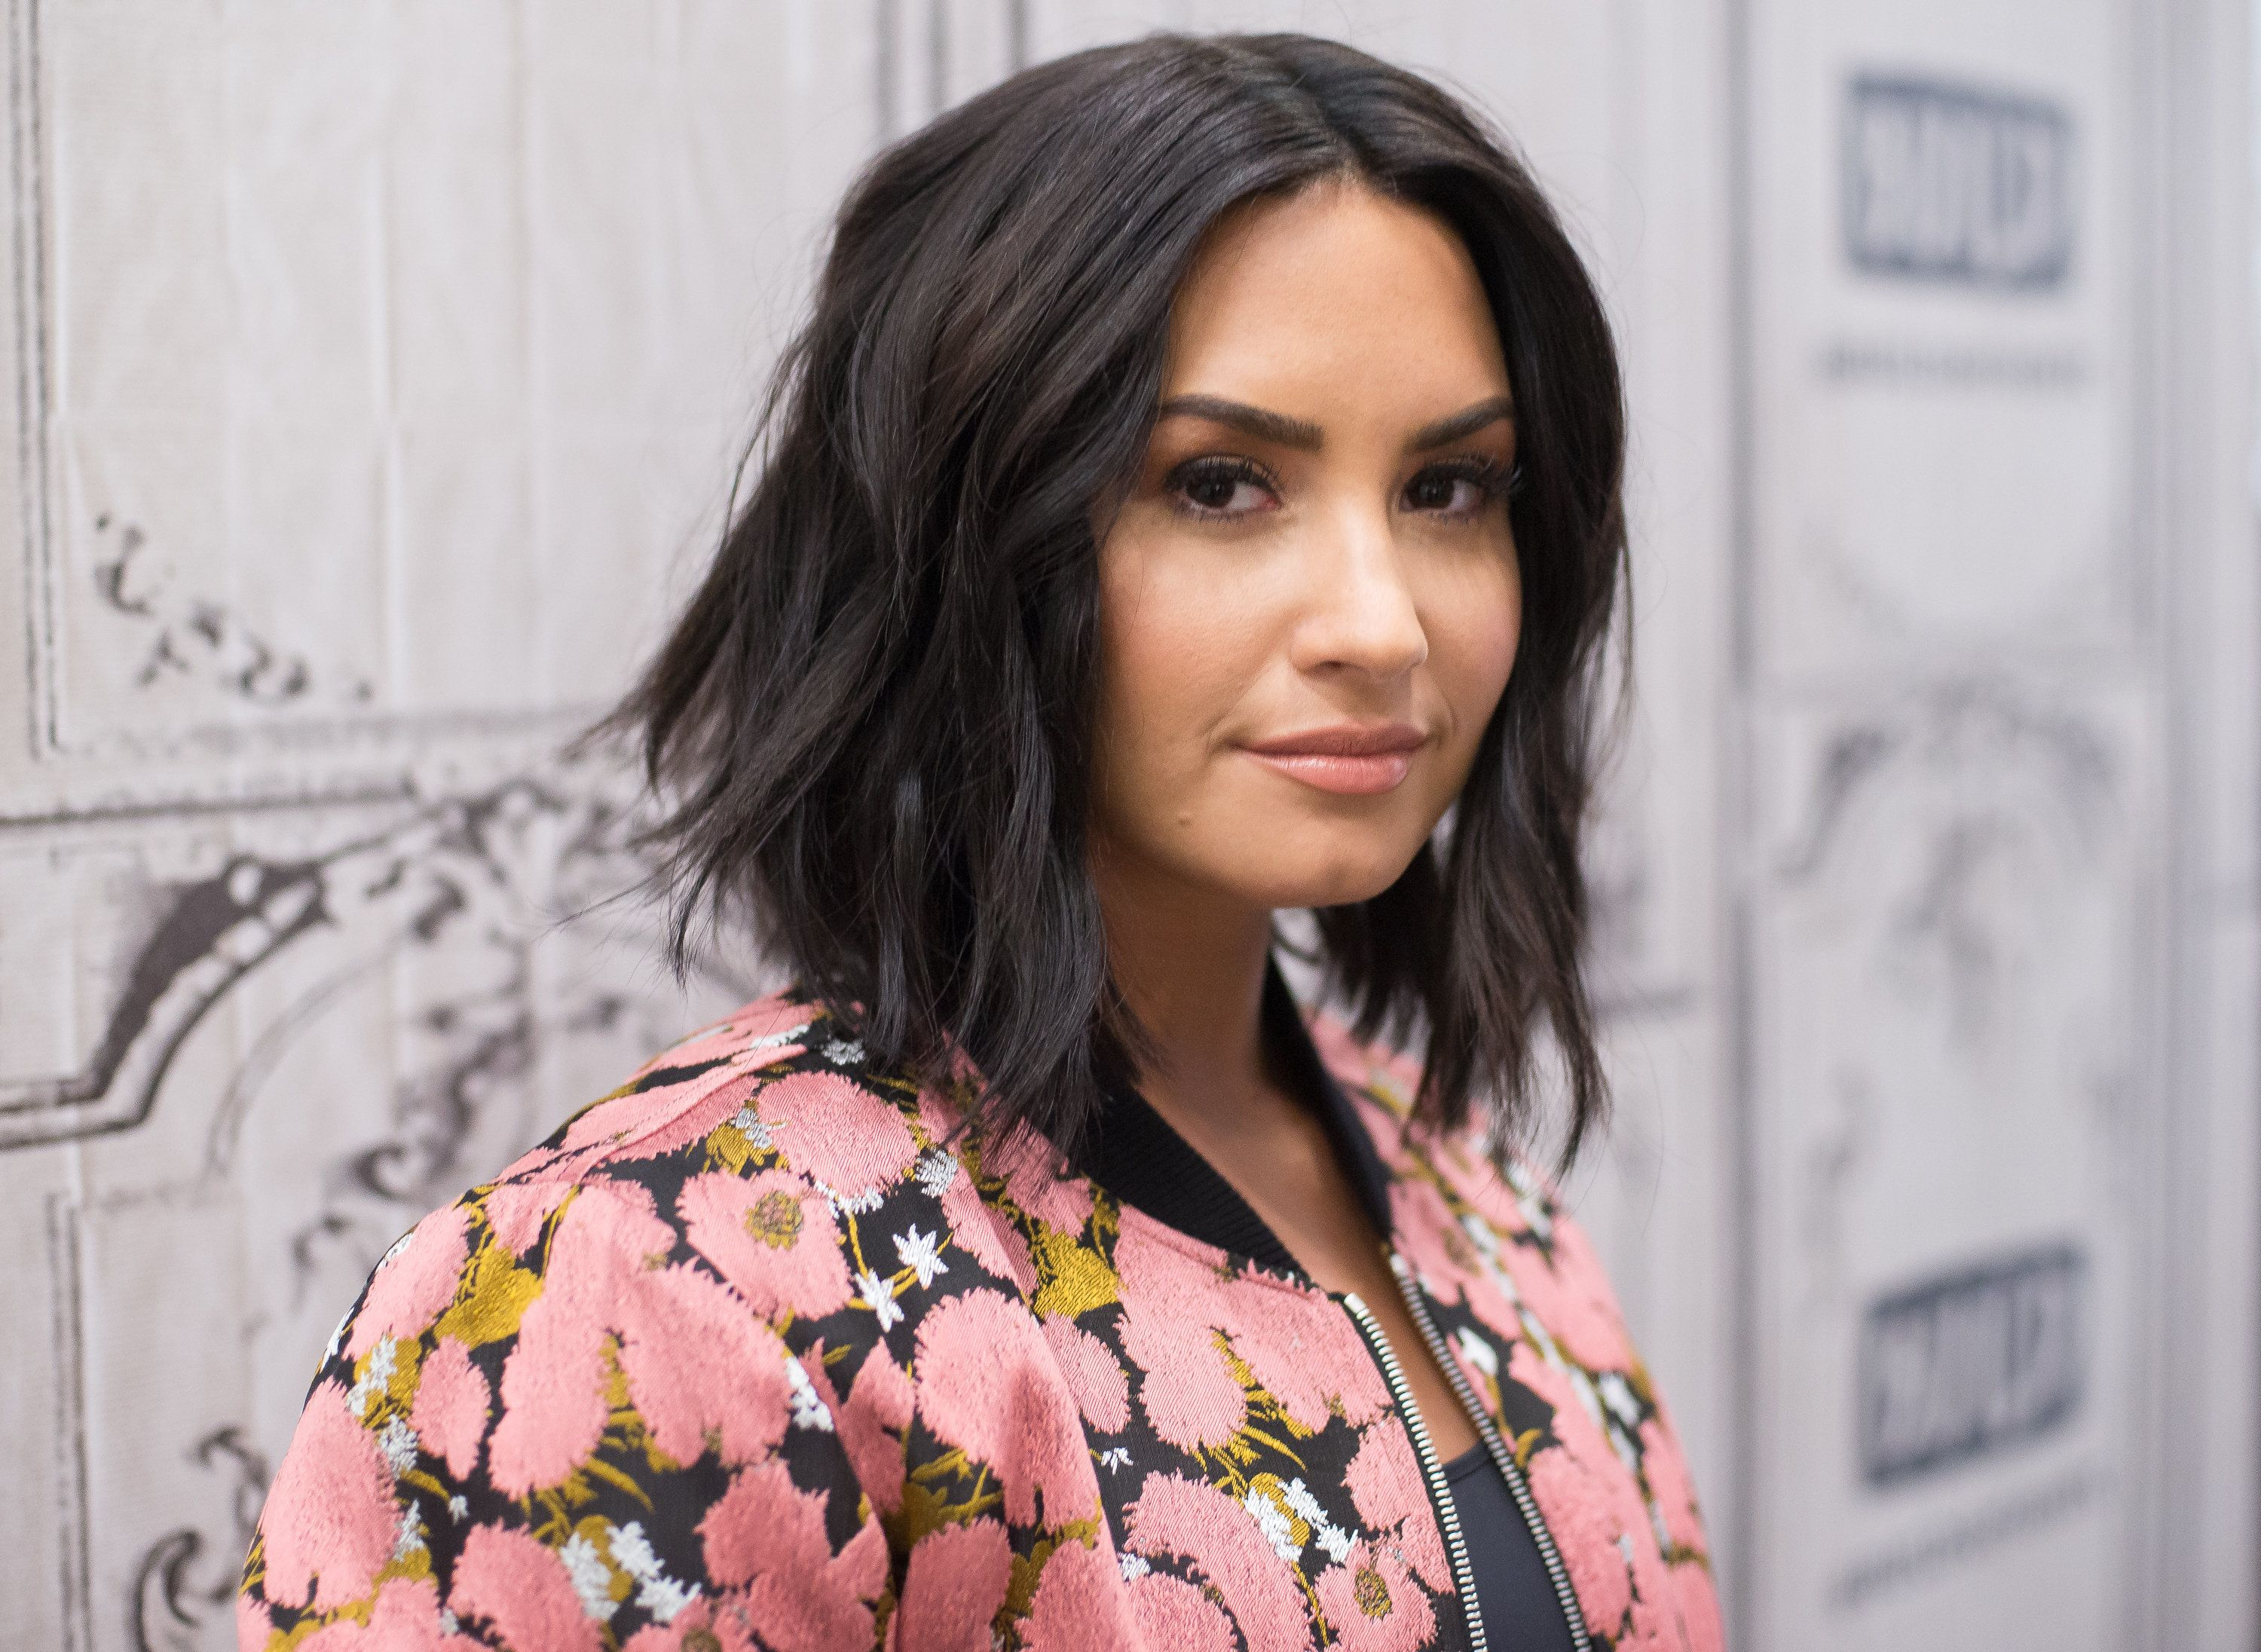 Demi Lovato, seen here in 2017, was reported hospitalized on Tuesday due to a possible drug overdose.